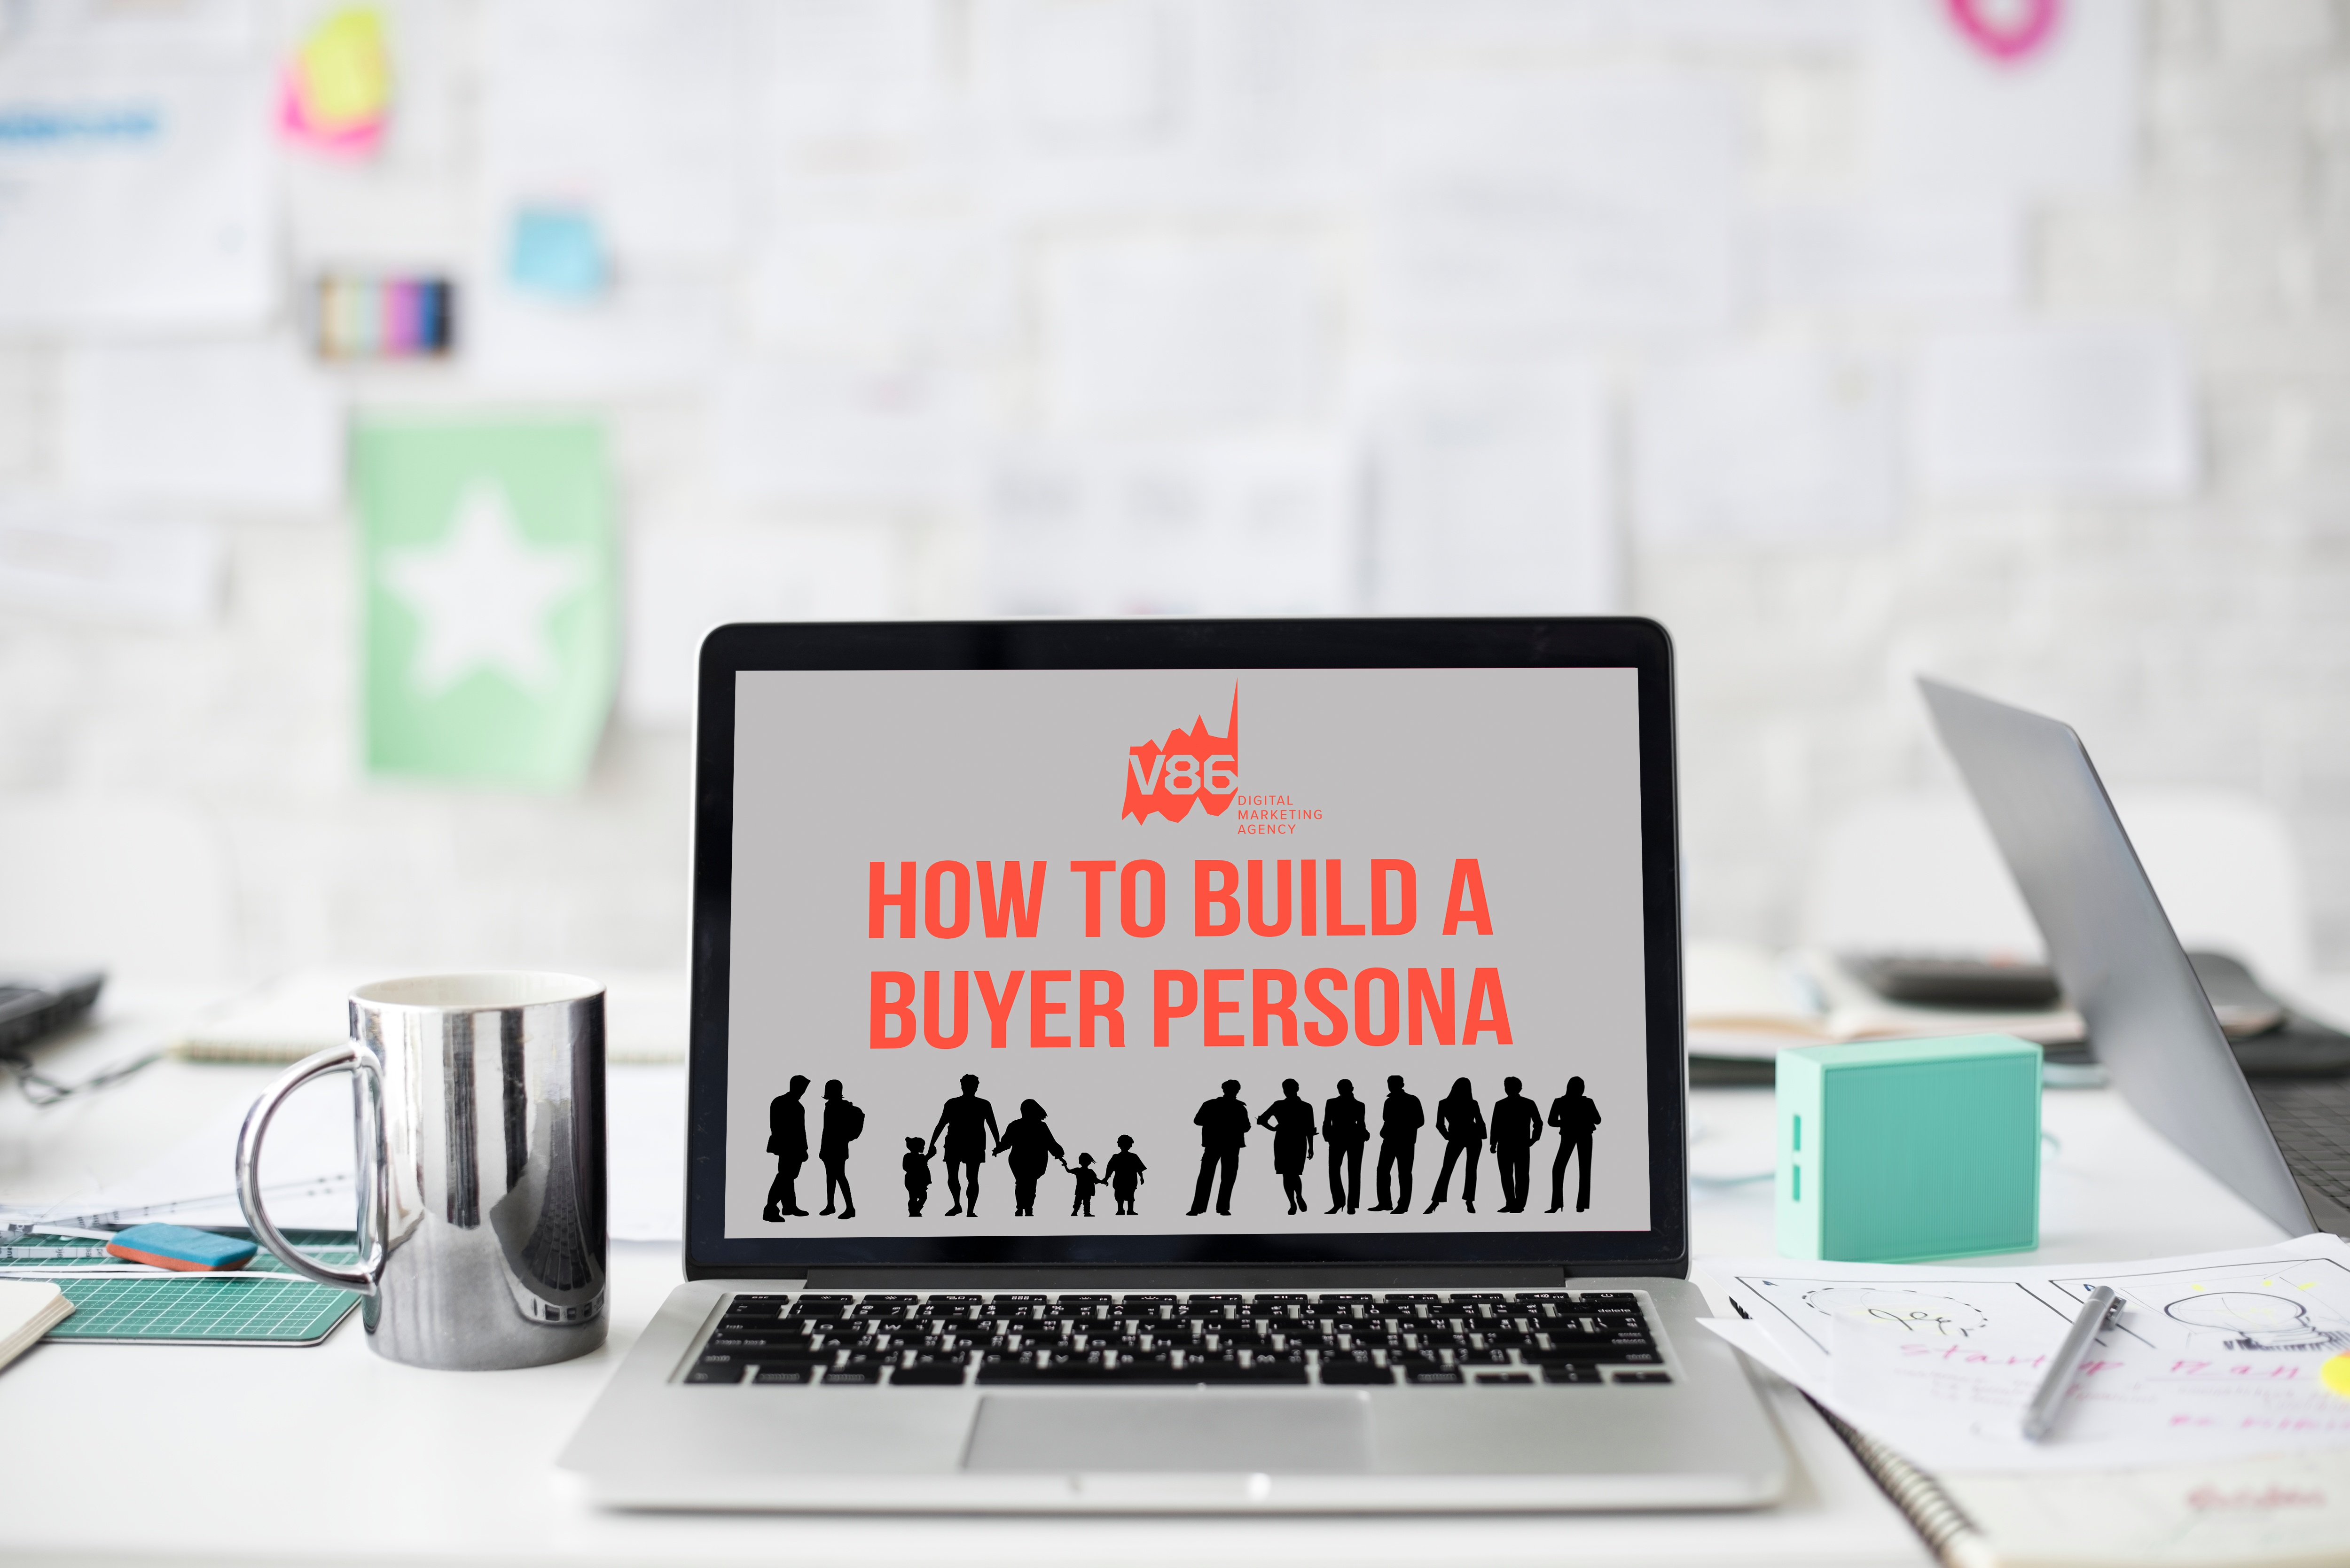 How to build a buyer persona